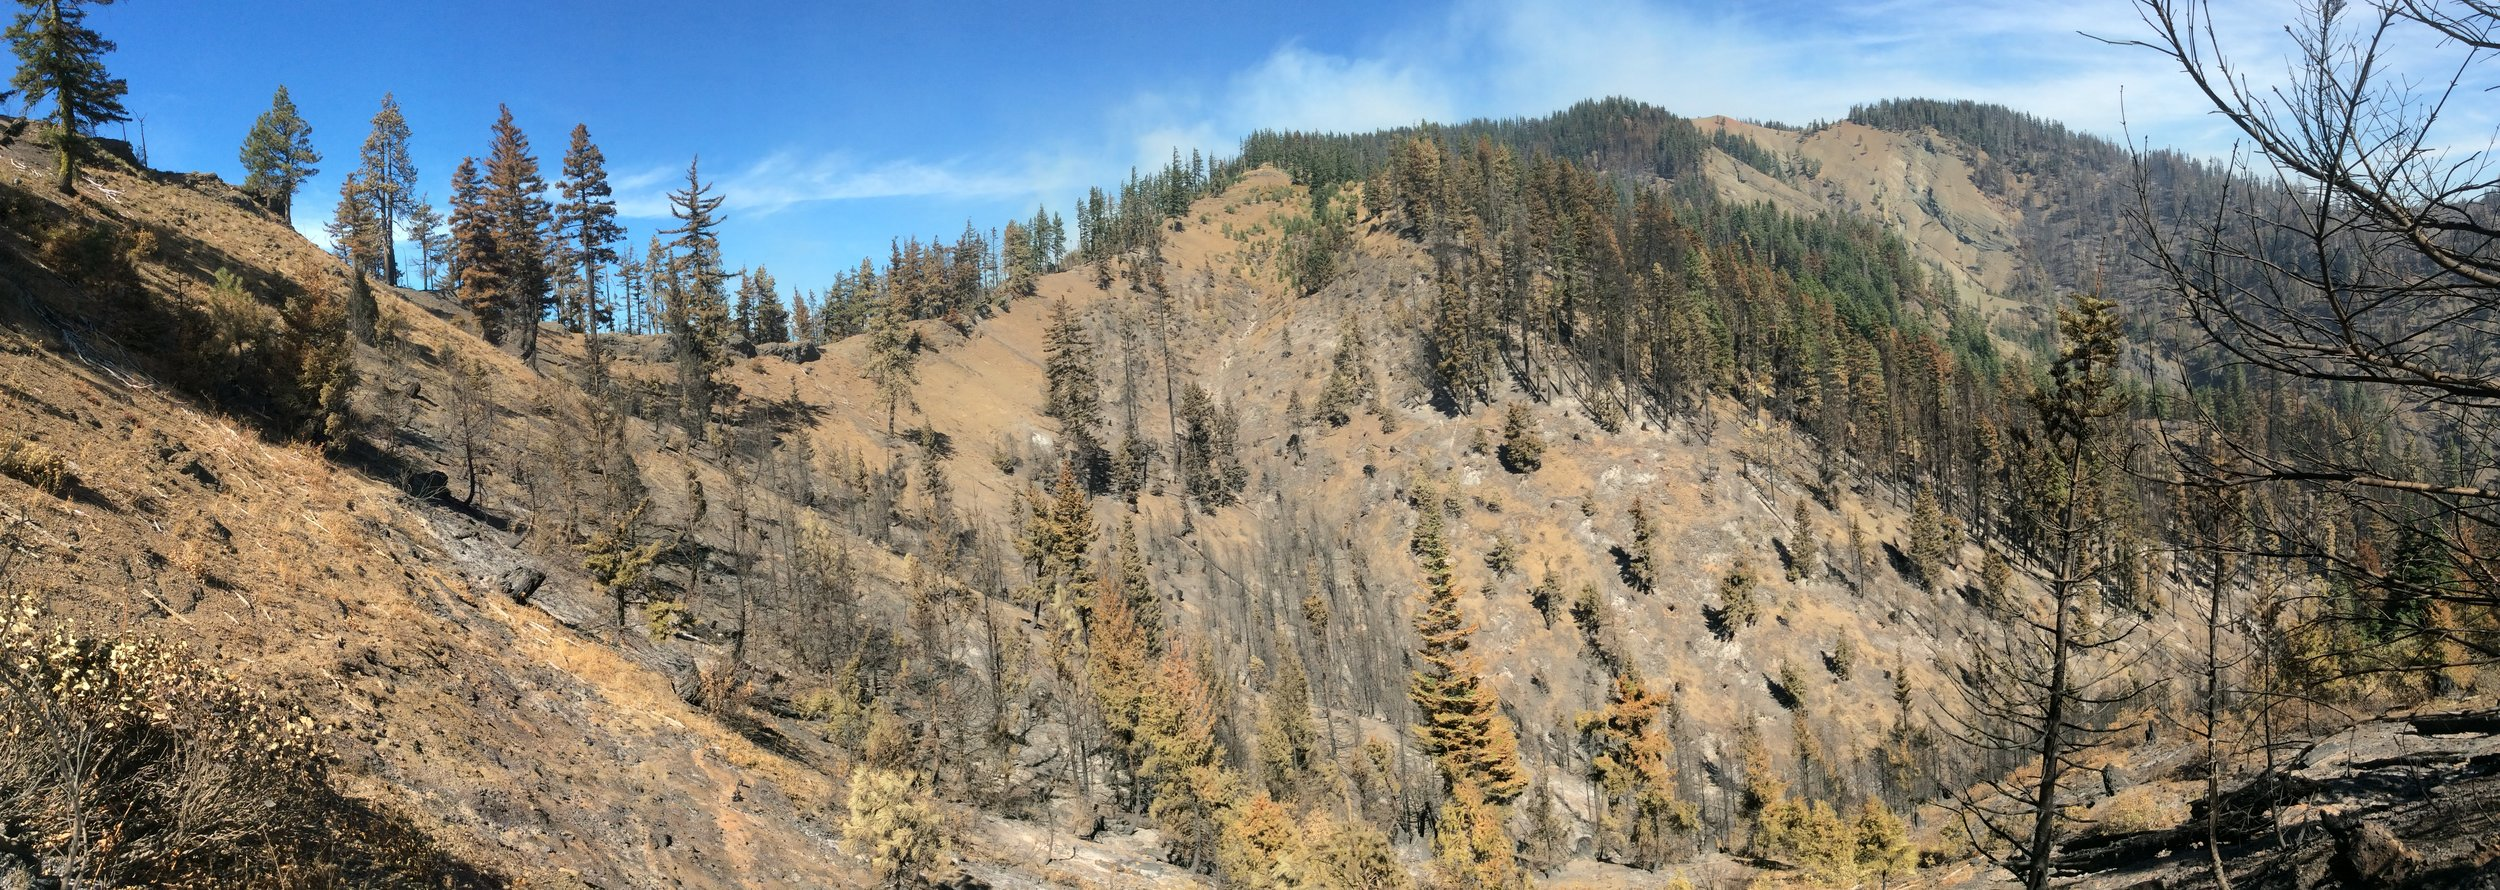 View toward Hex Mountain and headwaters of Newport Creek. Mixed severity burn in timber and high severity in tree plantations. Photo © Brian Mize/TNC